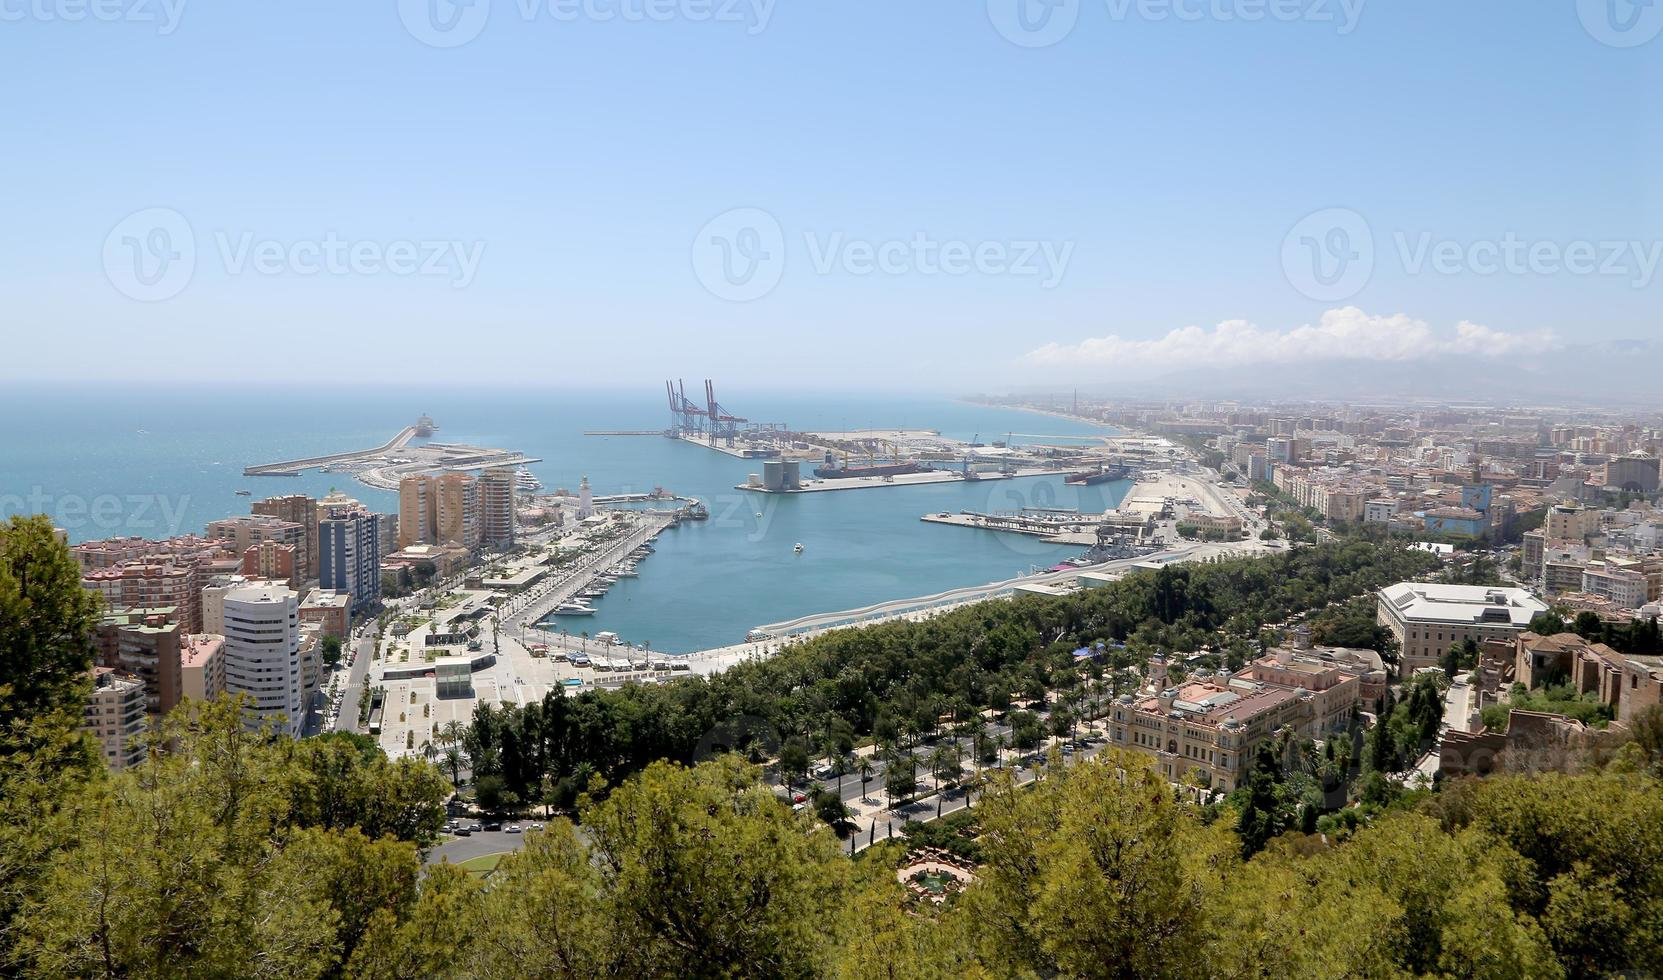 Malaga in Andalusia, Spain. Aerial view photo